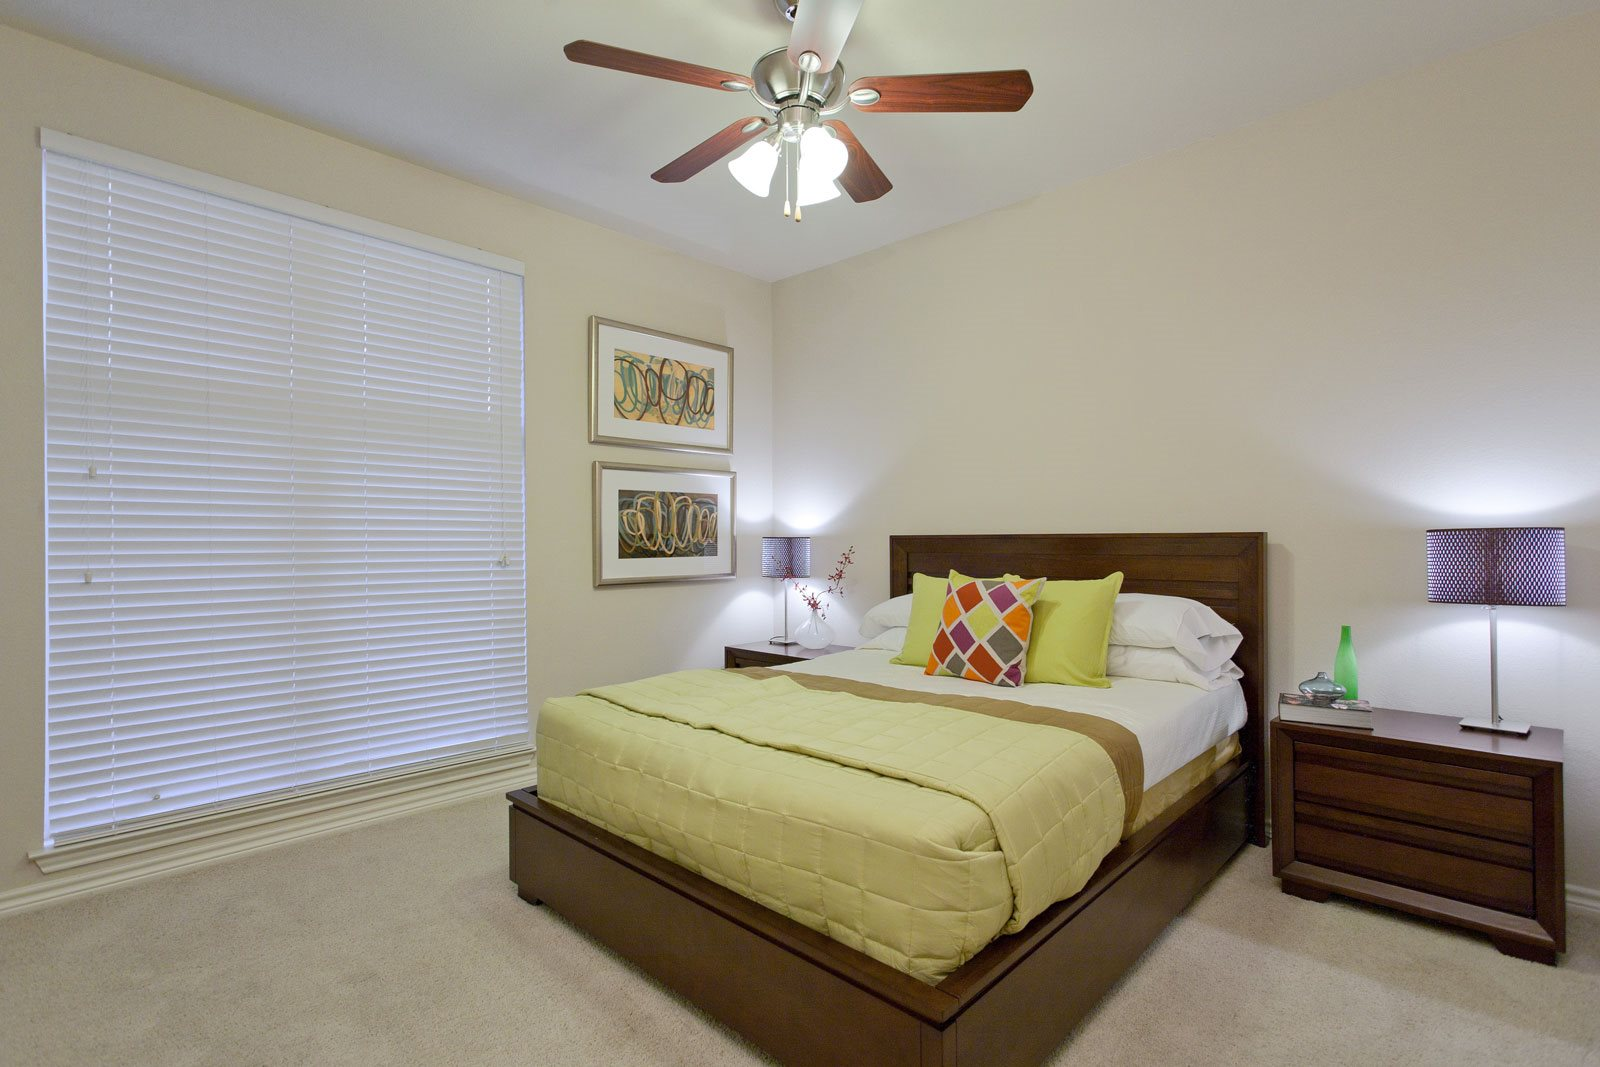 LED Lighted Ceiling Fan at Trianon by Windsor, Dallas, Texas